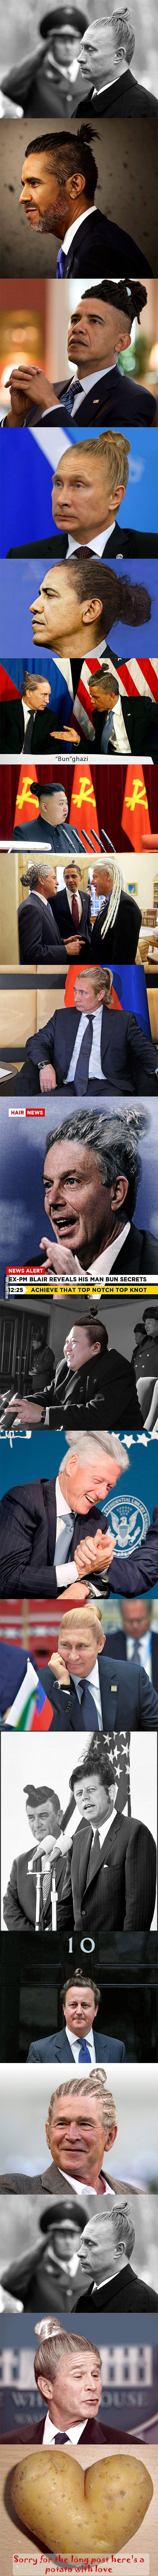 World leaders with the dreaded man bun...because of reasons...